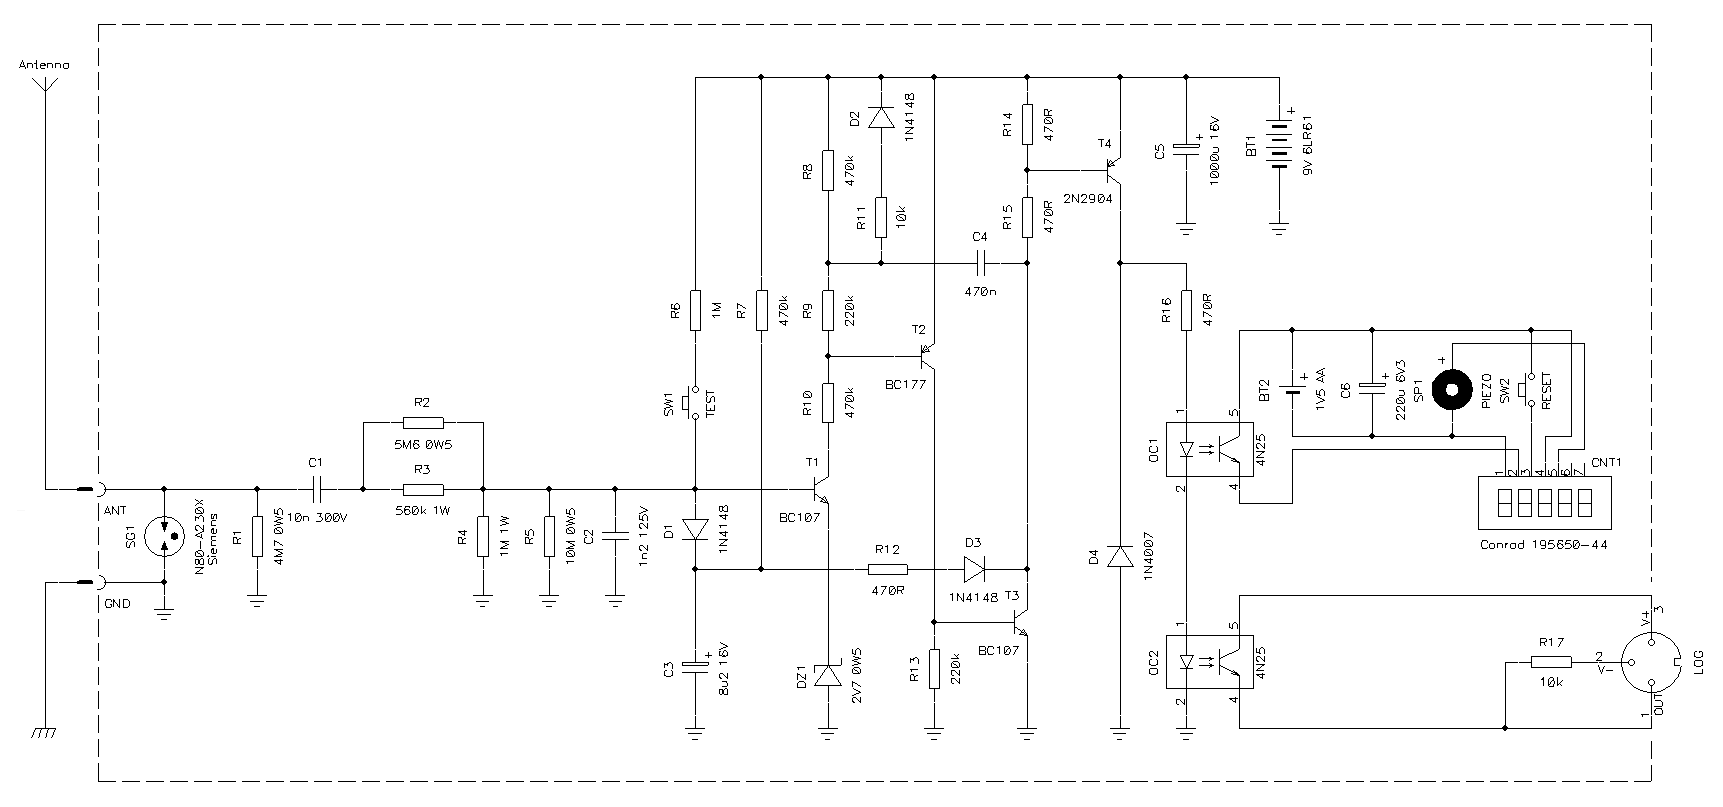 A Lightning Flash Counter Blinking Led Circuit Click For Pdf Version Schematic Diagram Of The To Enlarge